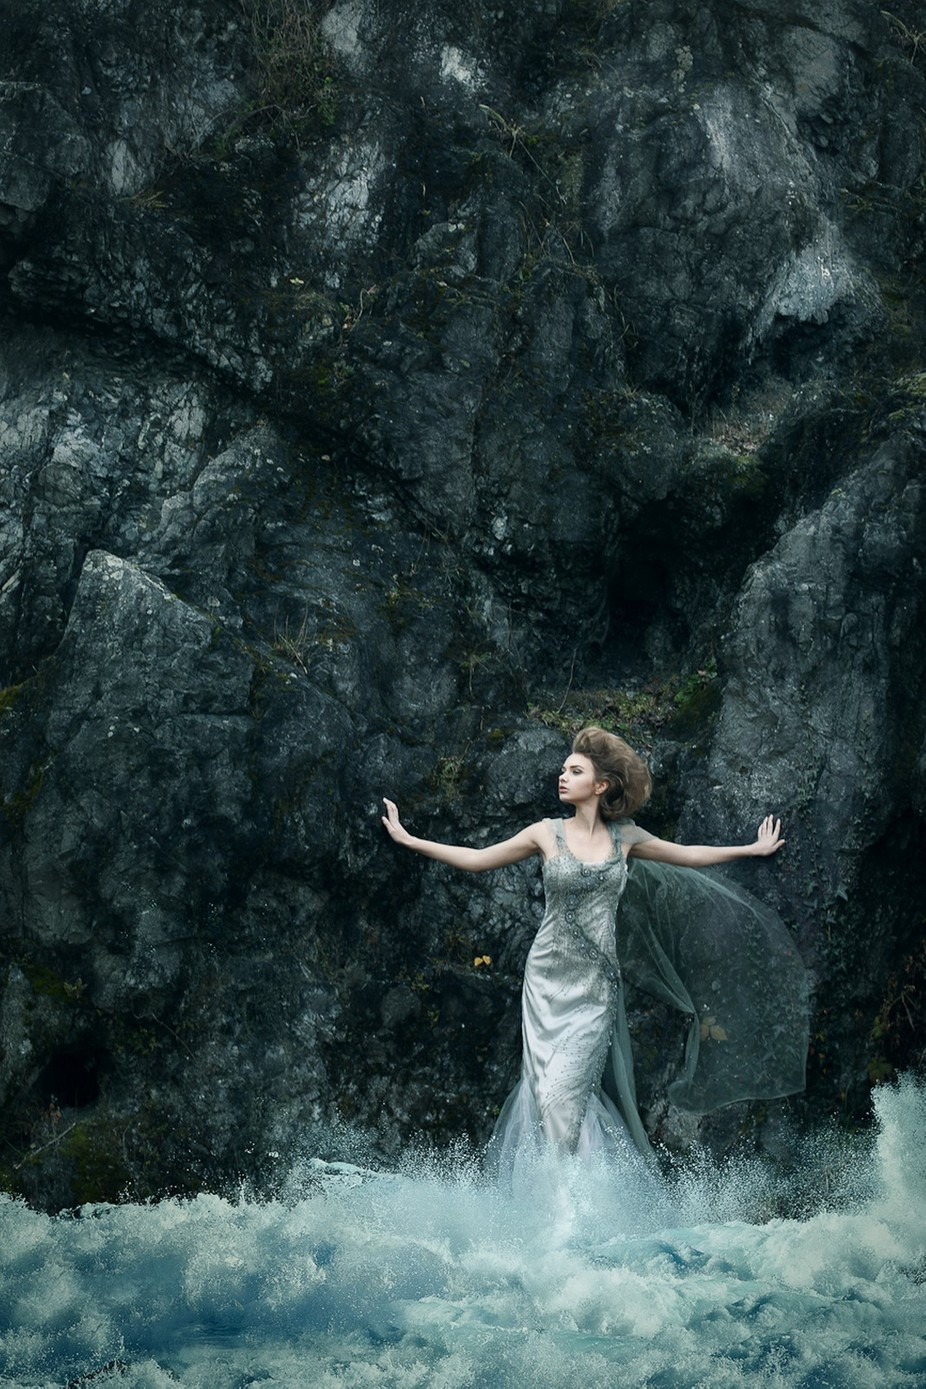 Queen of Water by alegrita - Celebrating Fashion Photo Contest